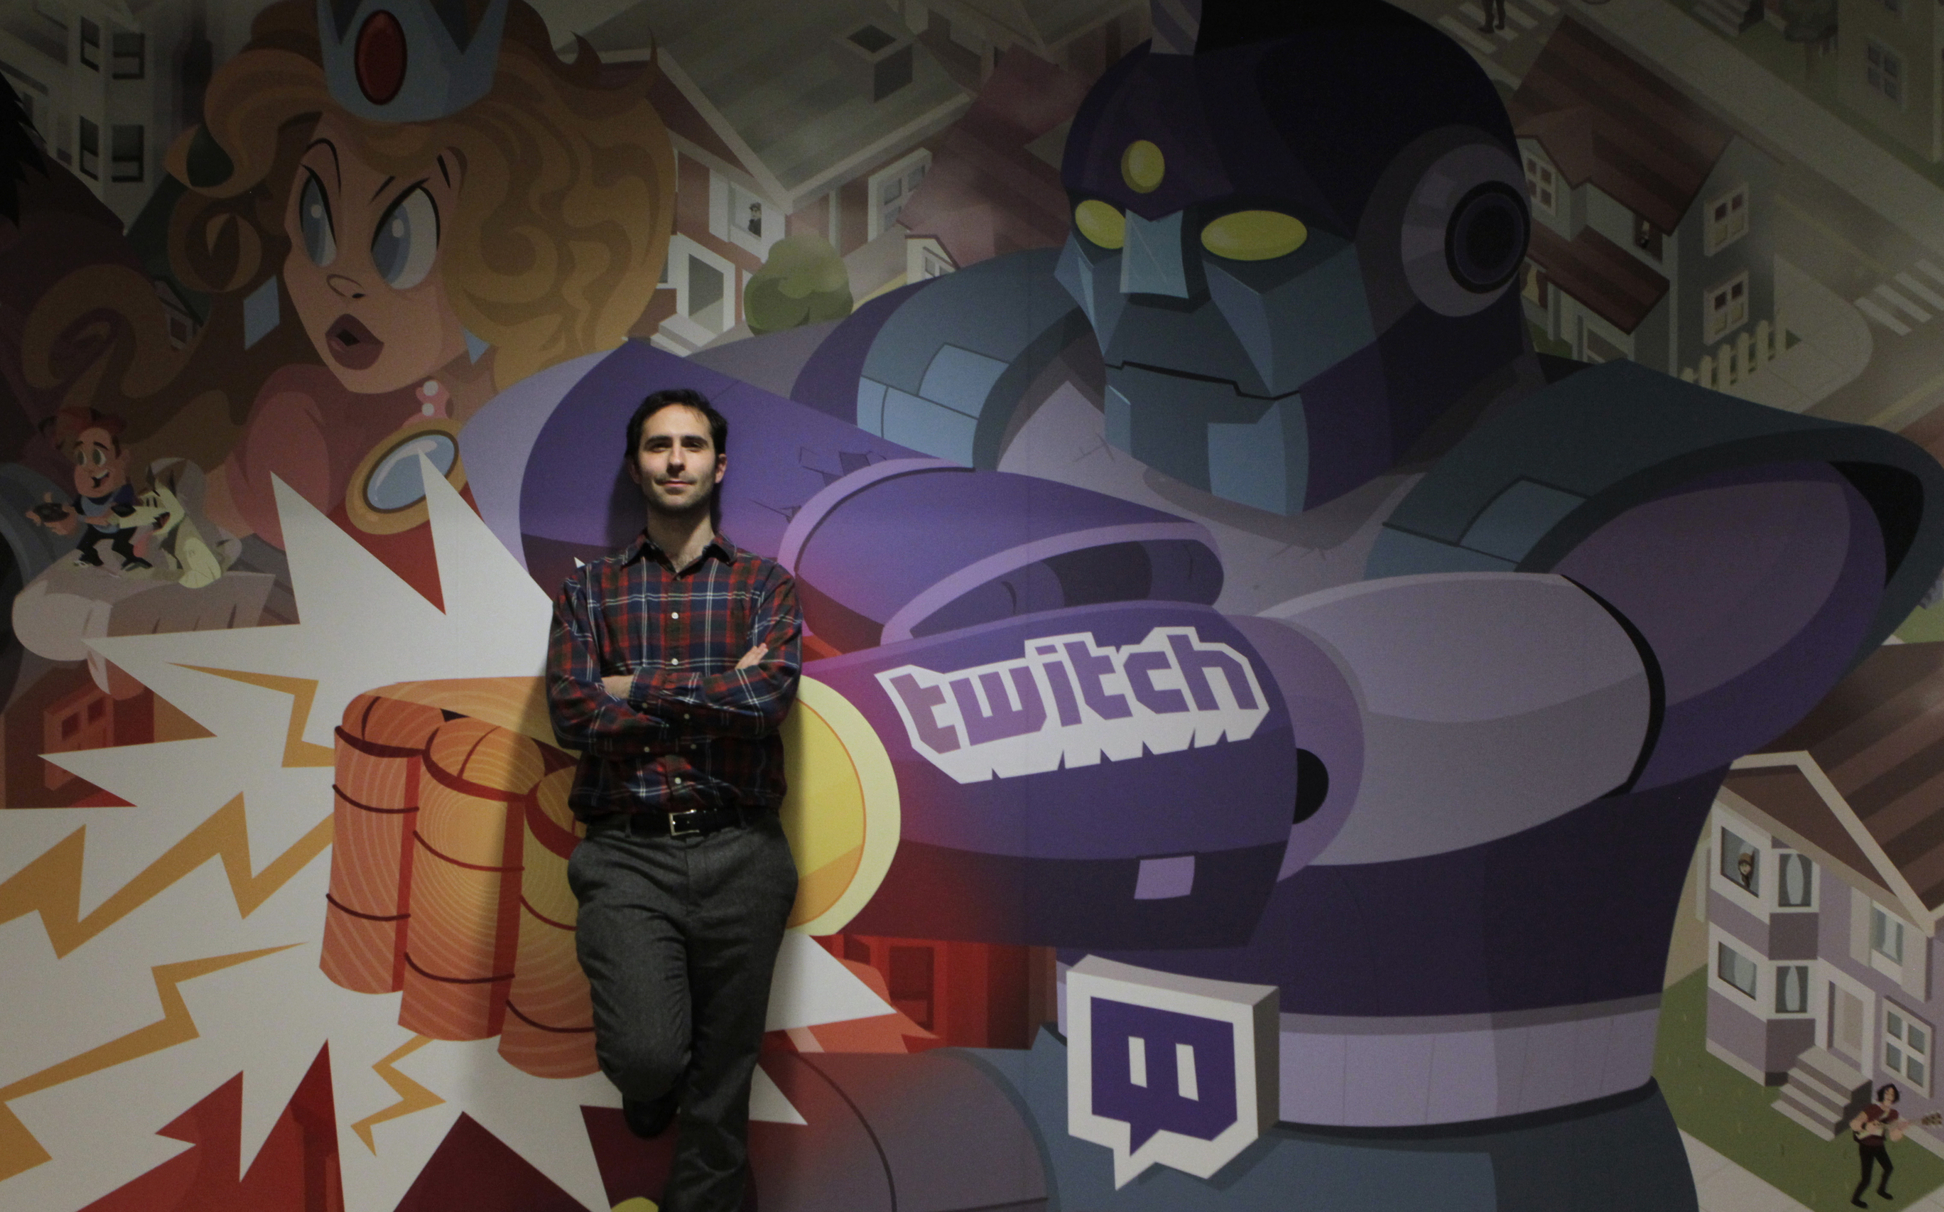 Game streaming site Twitch to host convention at Moscone